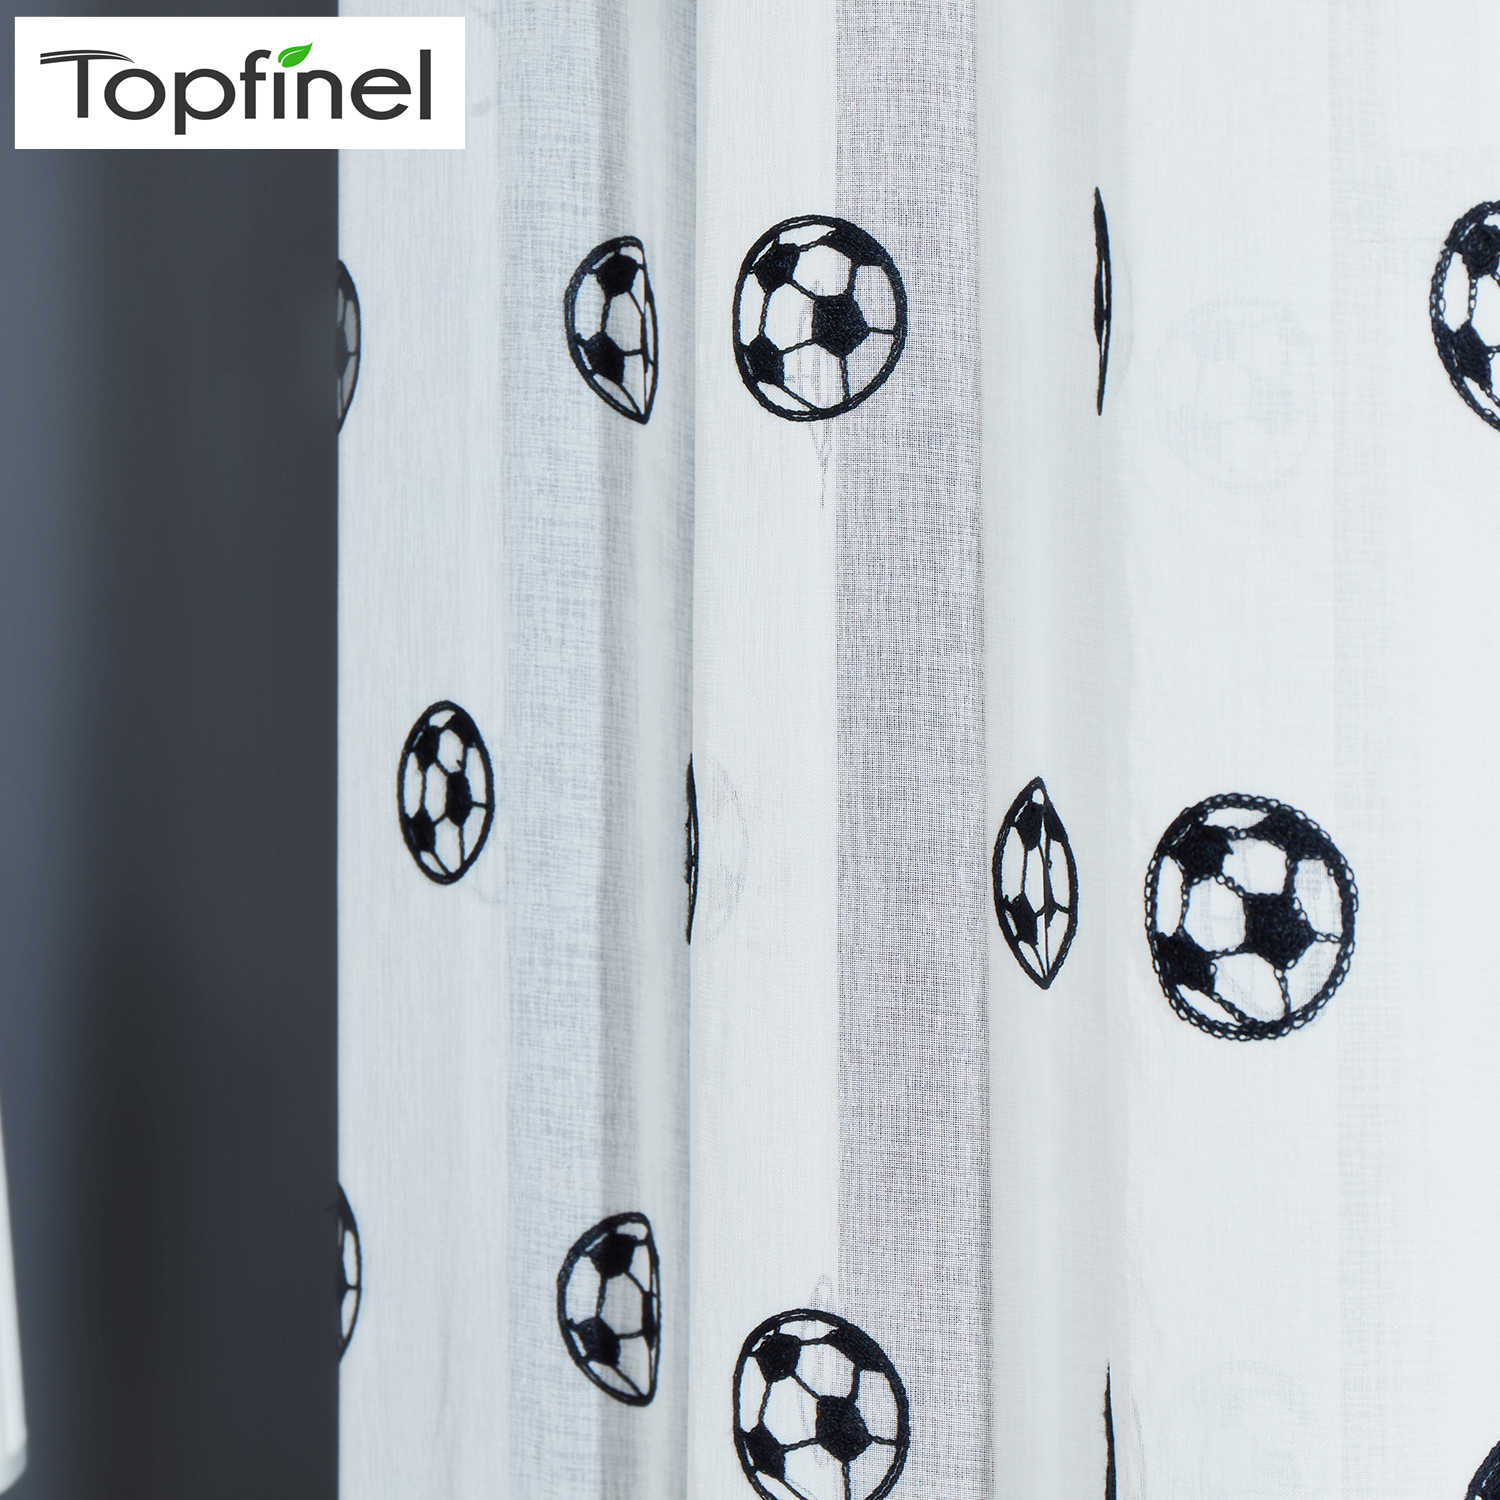 Topfinel Football Curtains Embroidered Children Curtains Boys Sheer Curtains for Living Room Bedroom Tulle White Voile Curtains